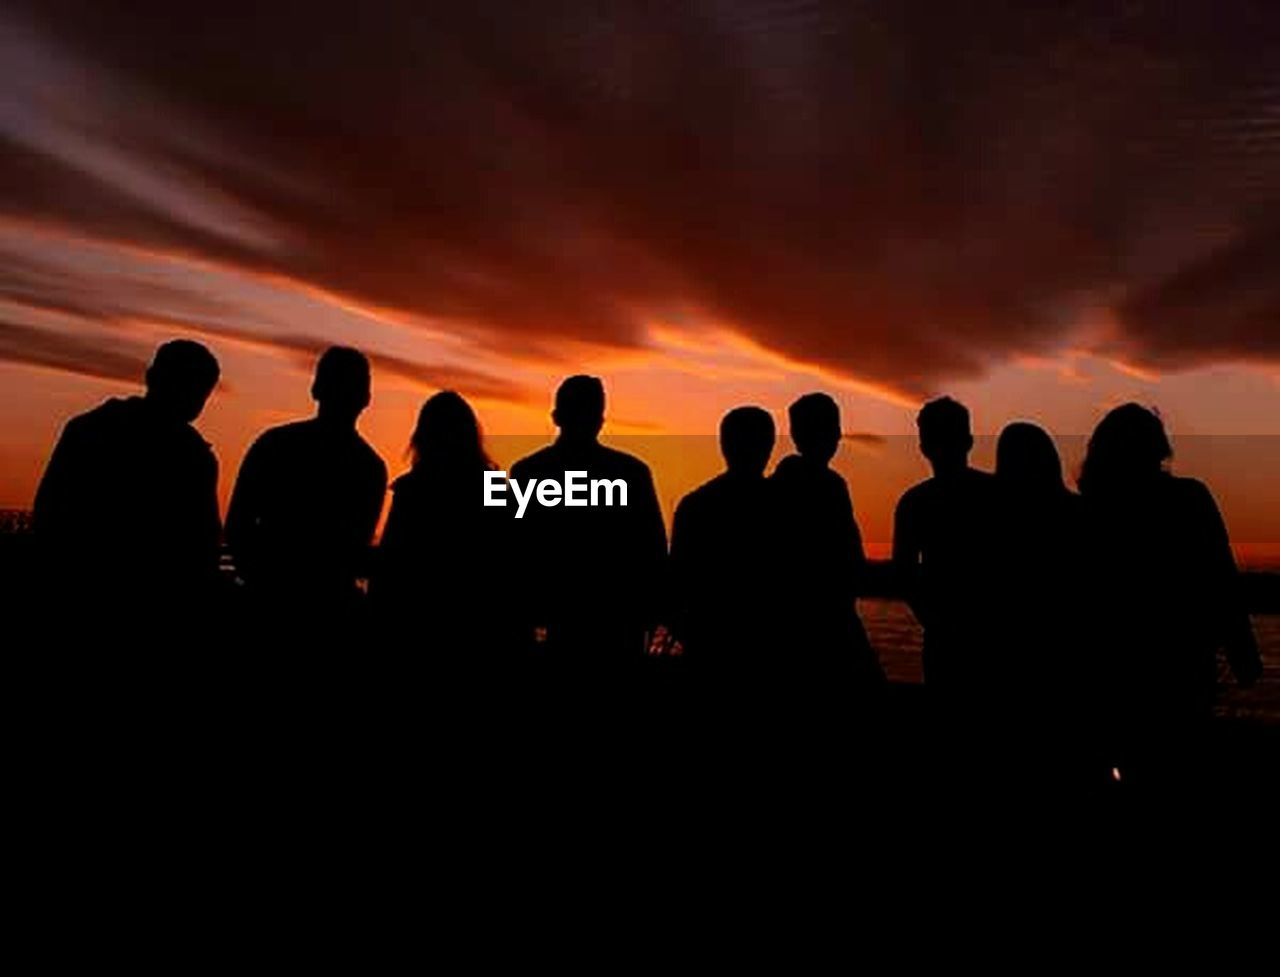 silhouette, sunset, orange color, togetherness, standing, friendship, large group of people, outdoors, people, nature, sky, adult, day